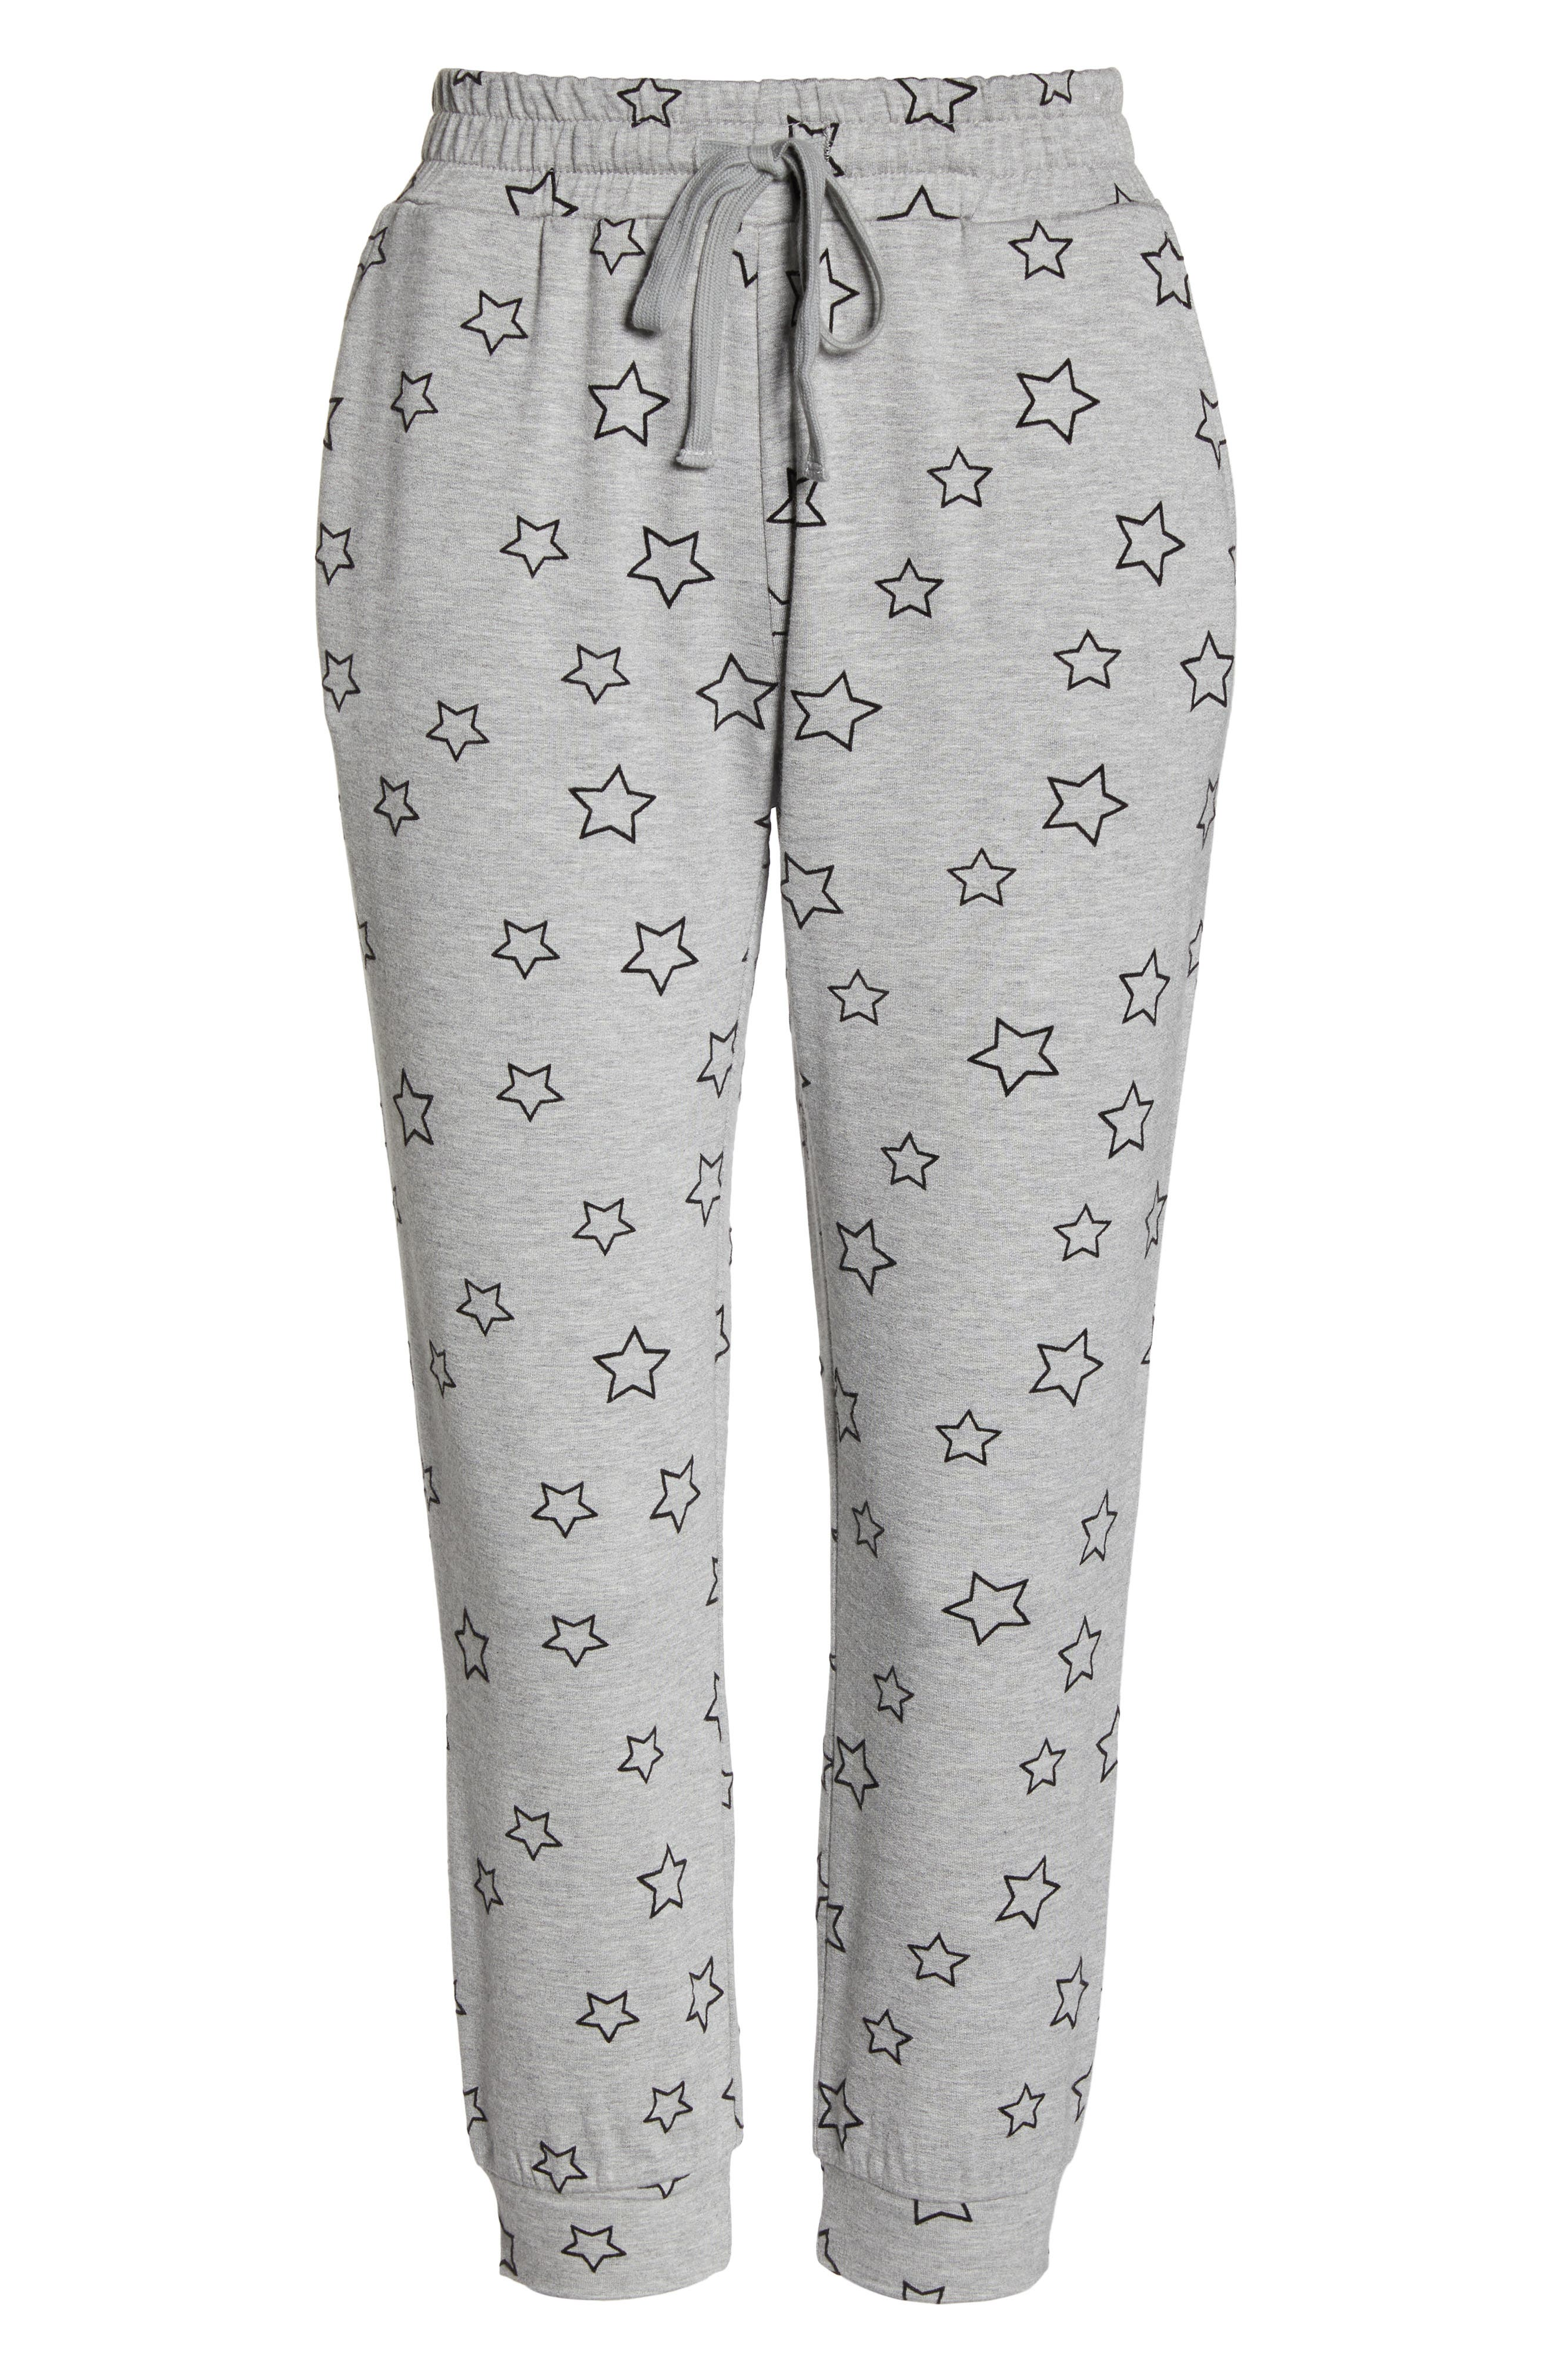 Seeing Stars Lounge Jogger Pants,                             Alternate thumbnail 6, color,                             HEATHER GREY